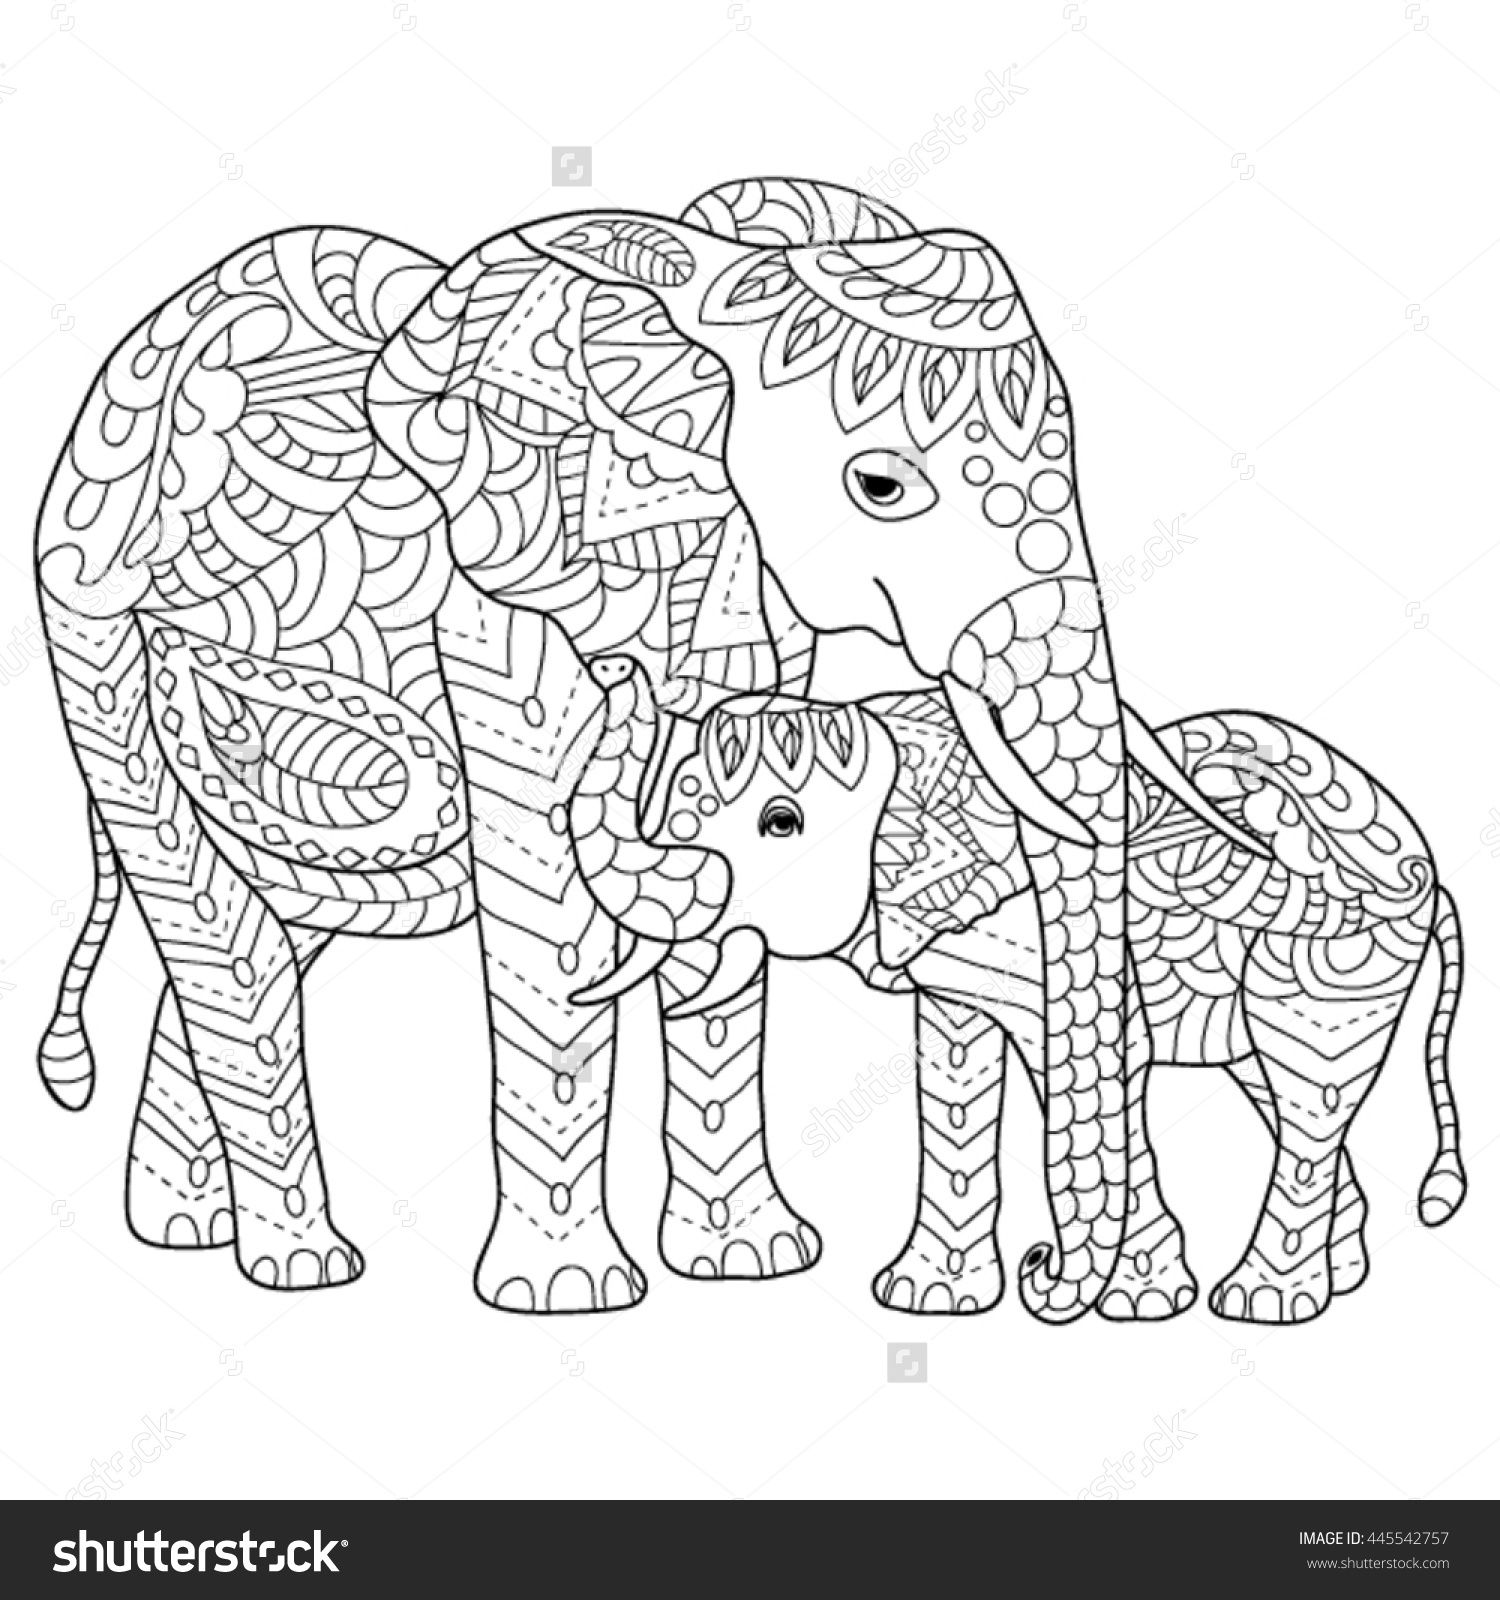 hand drawn elephants coloring page | Pewter crafts | Pinterest ...